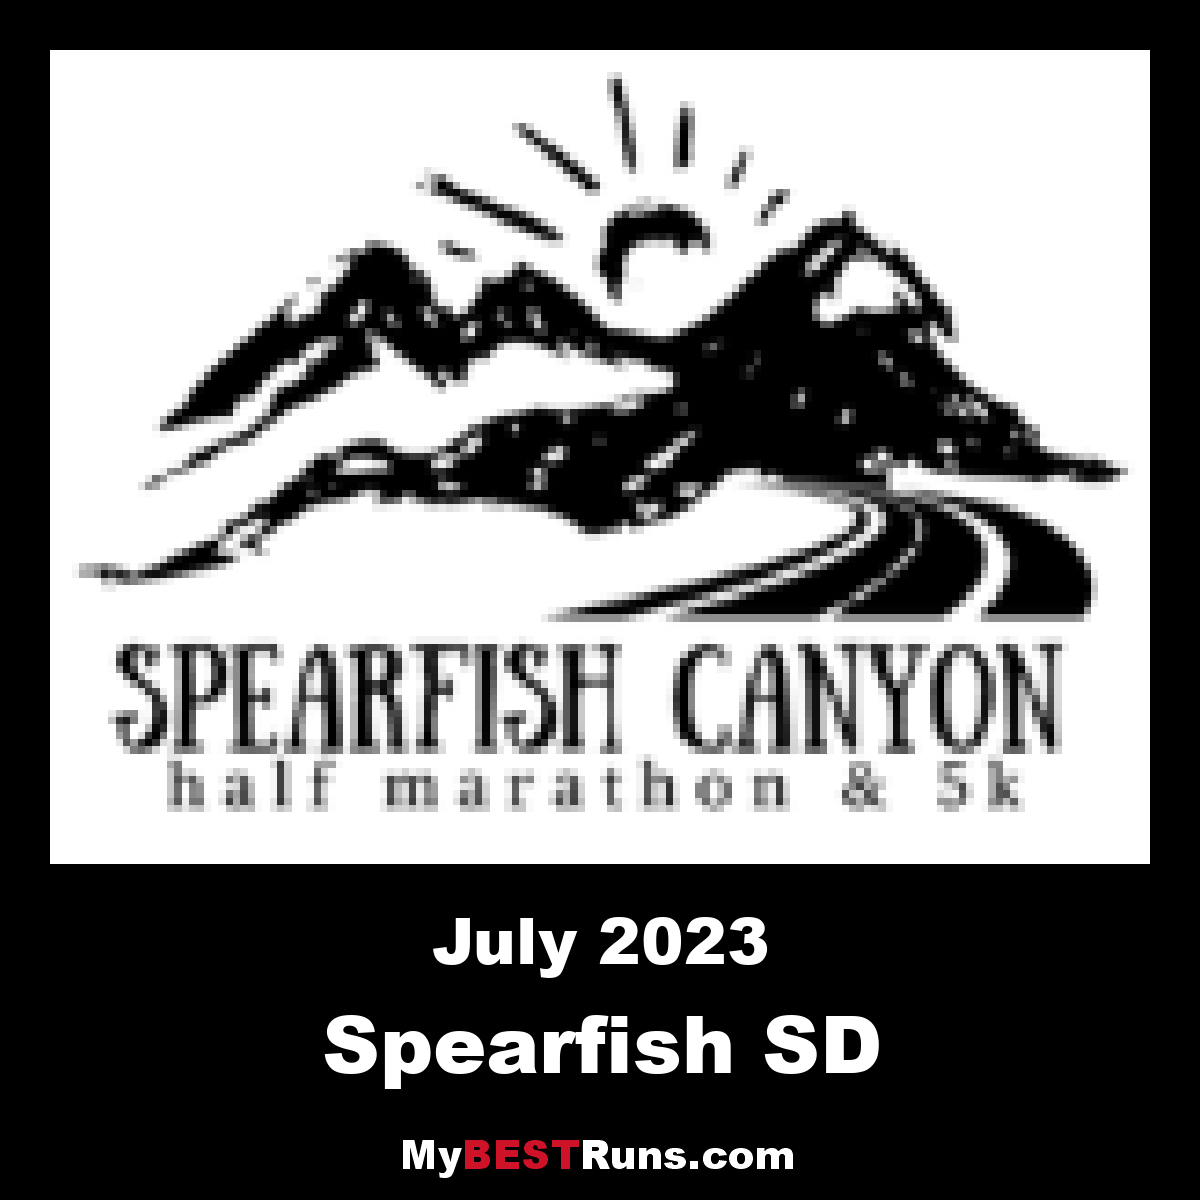 Spearfish Canyon Half Marathon